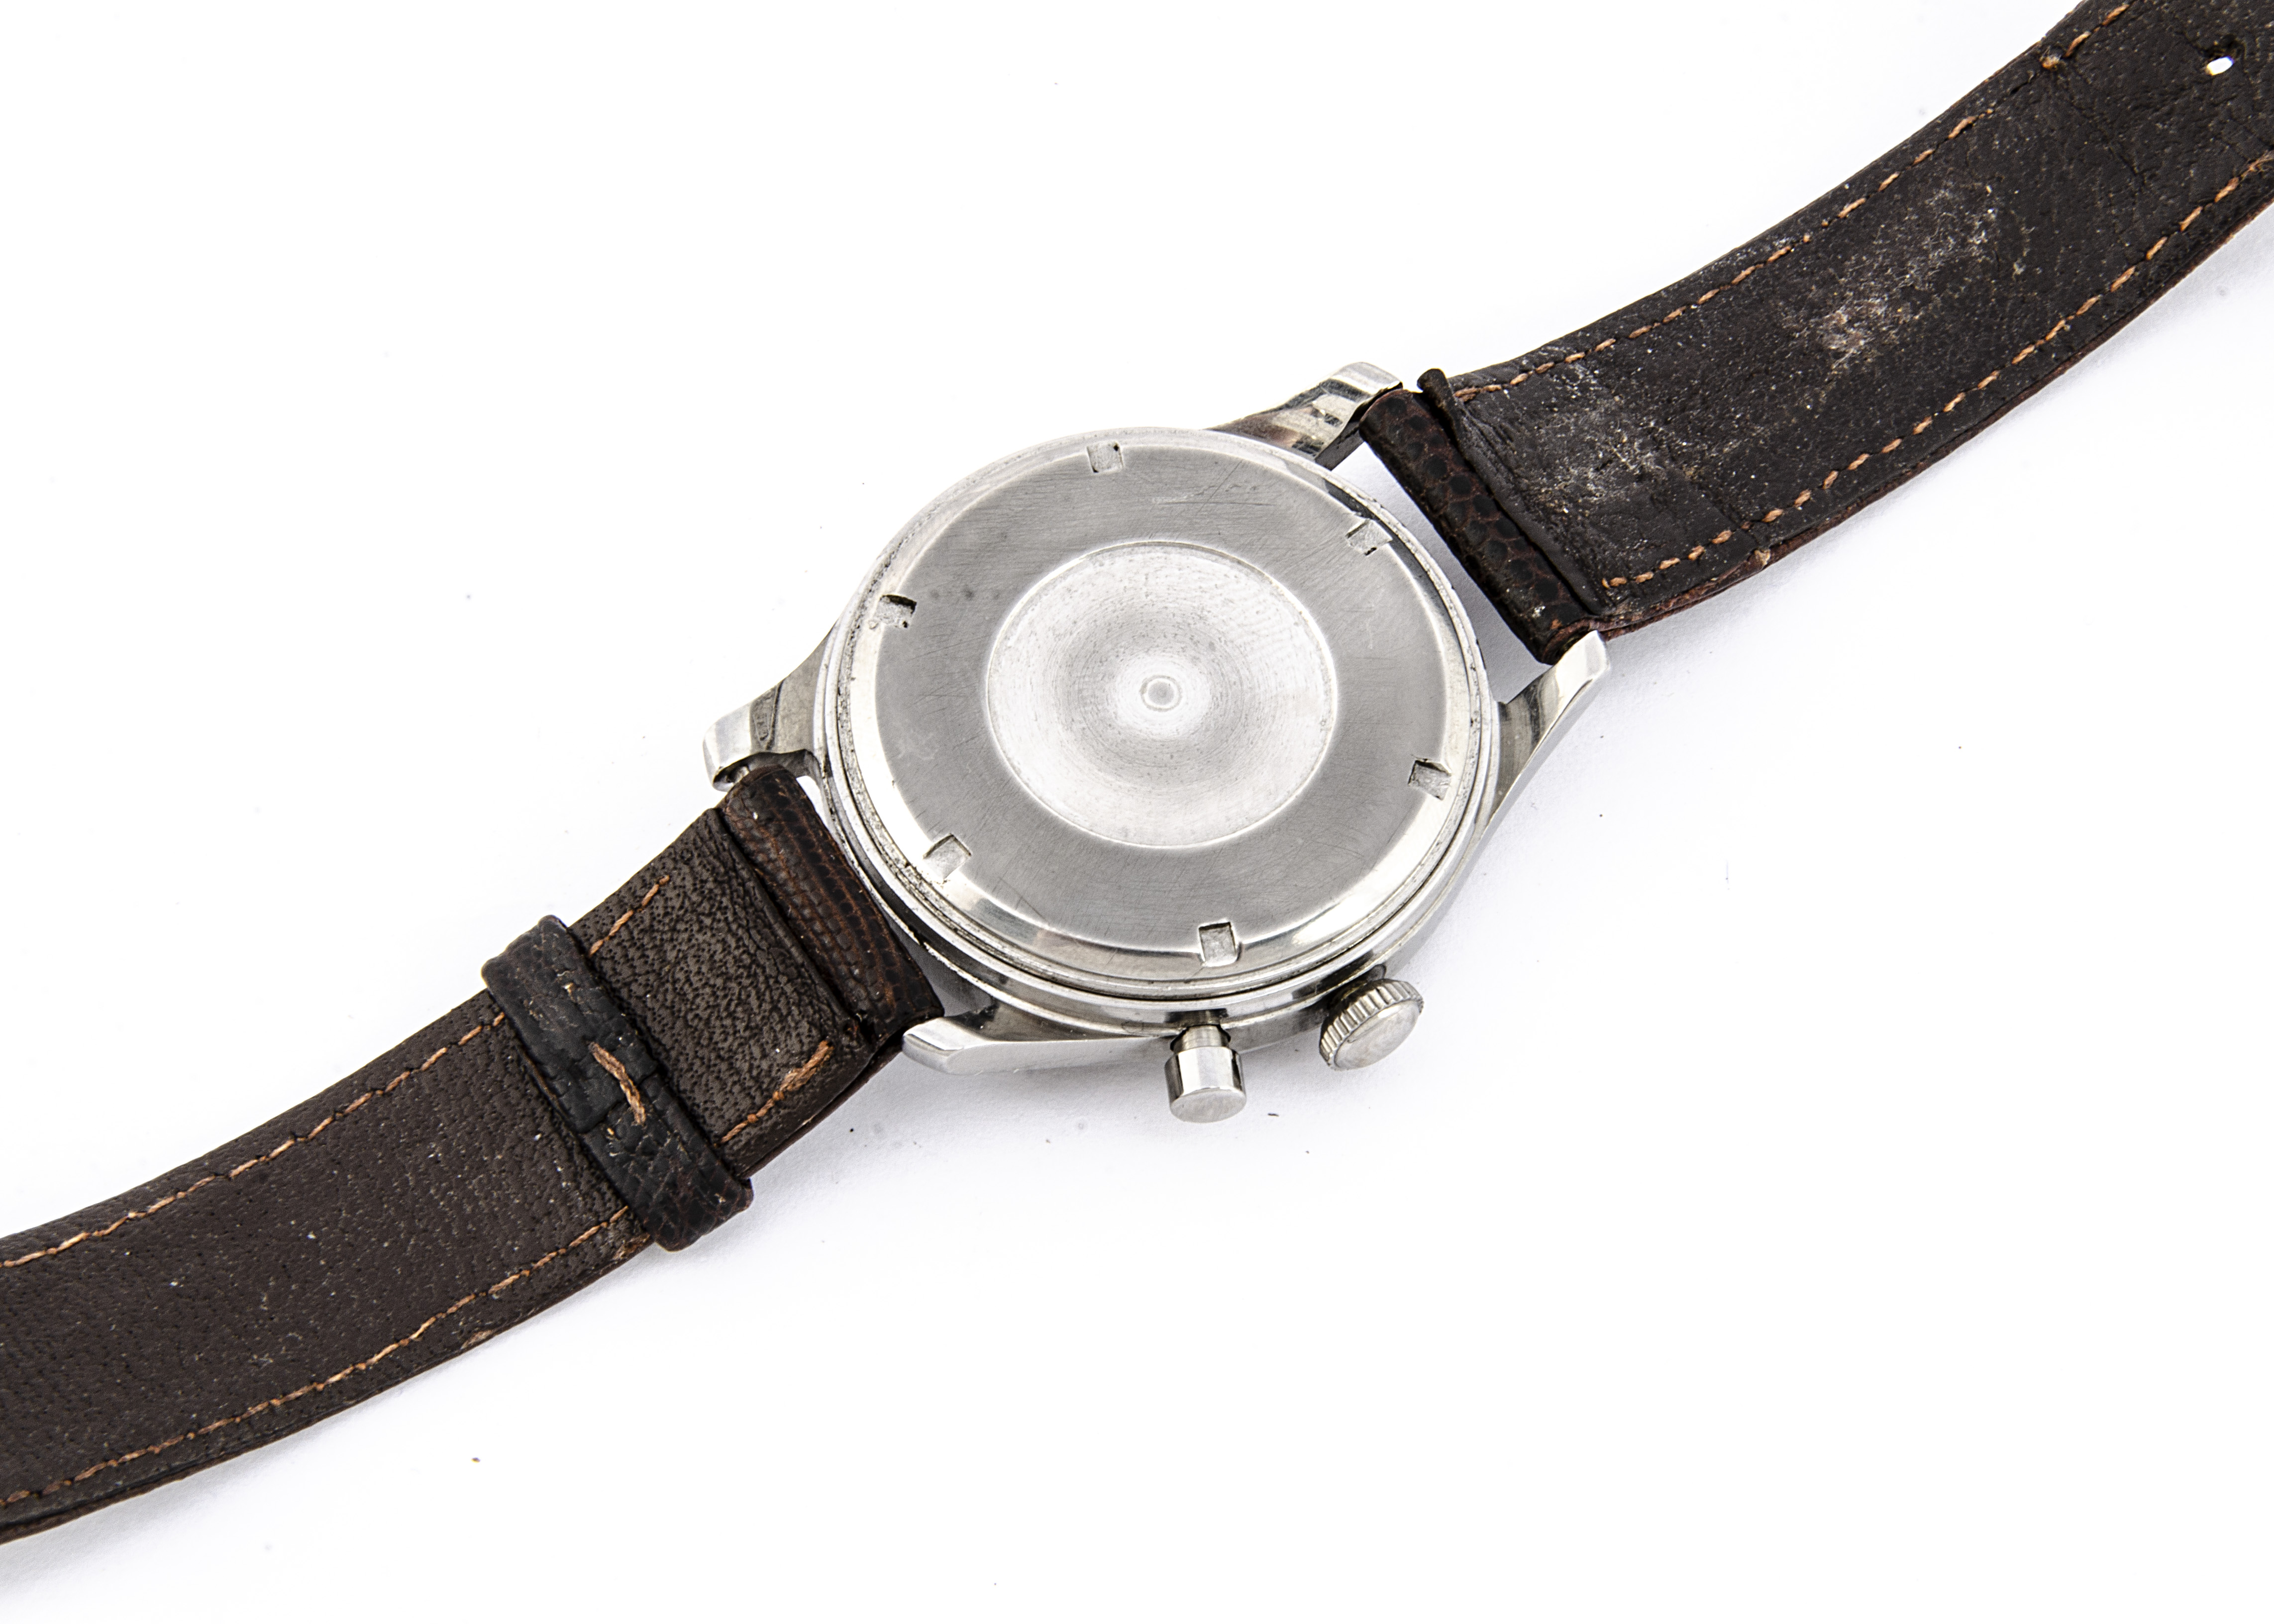 A c1959 Birks single button chronograph Royal Canadian Air Force stainless steel wristwatch, 36mm - Image 4 of 4